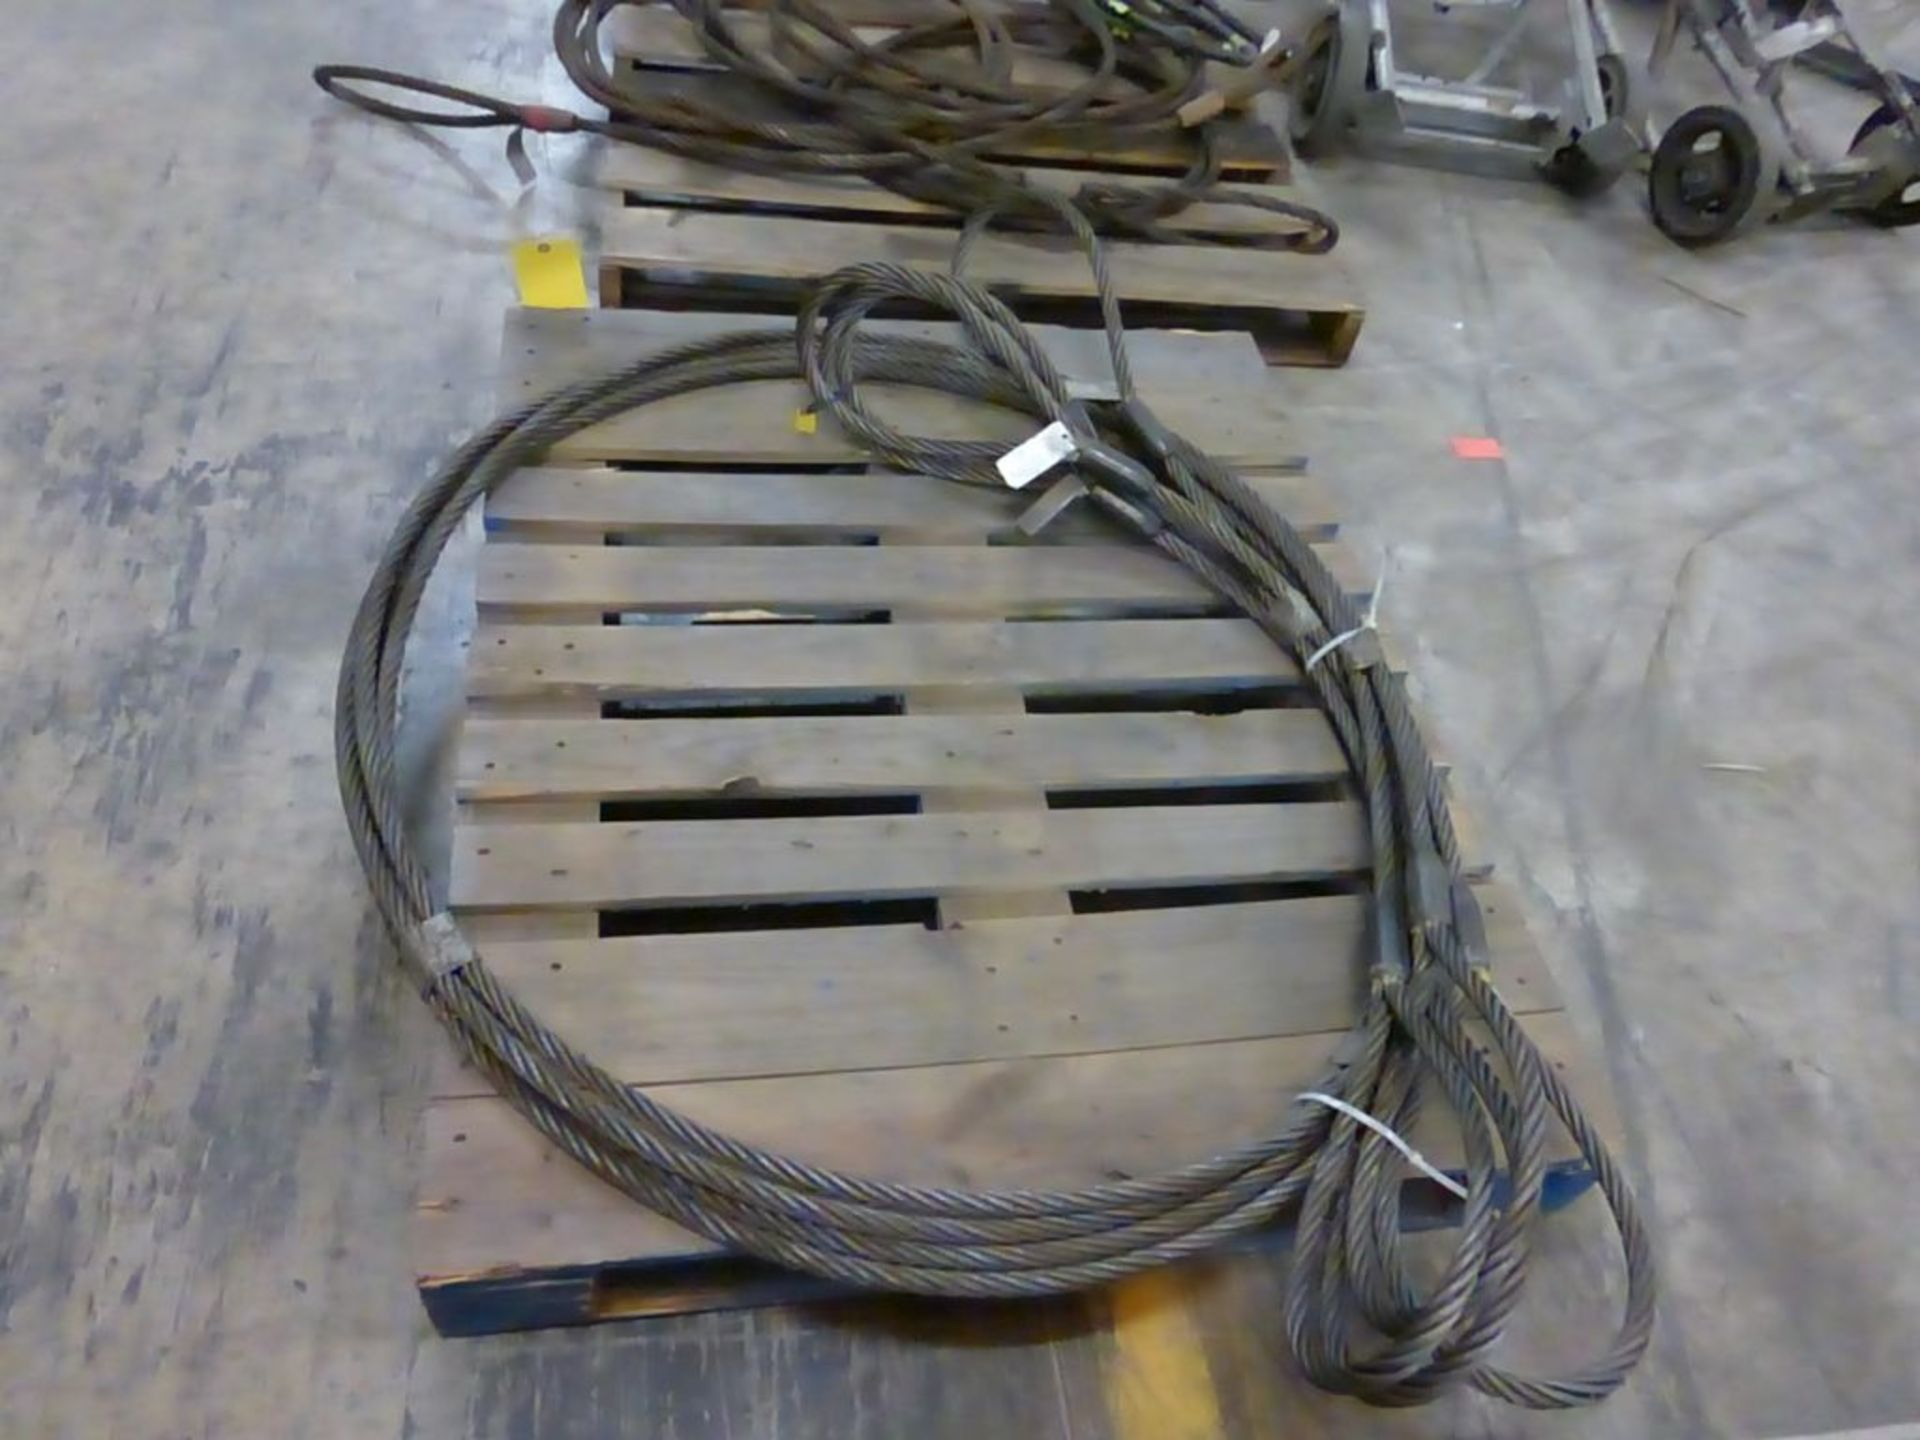 Lot of Pennsylvania Tool Wire Rope - Image 3 of 9